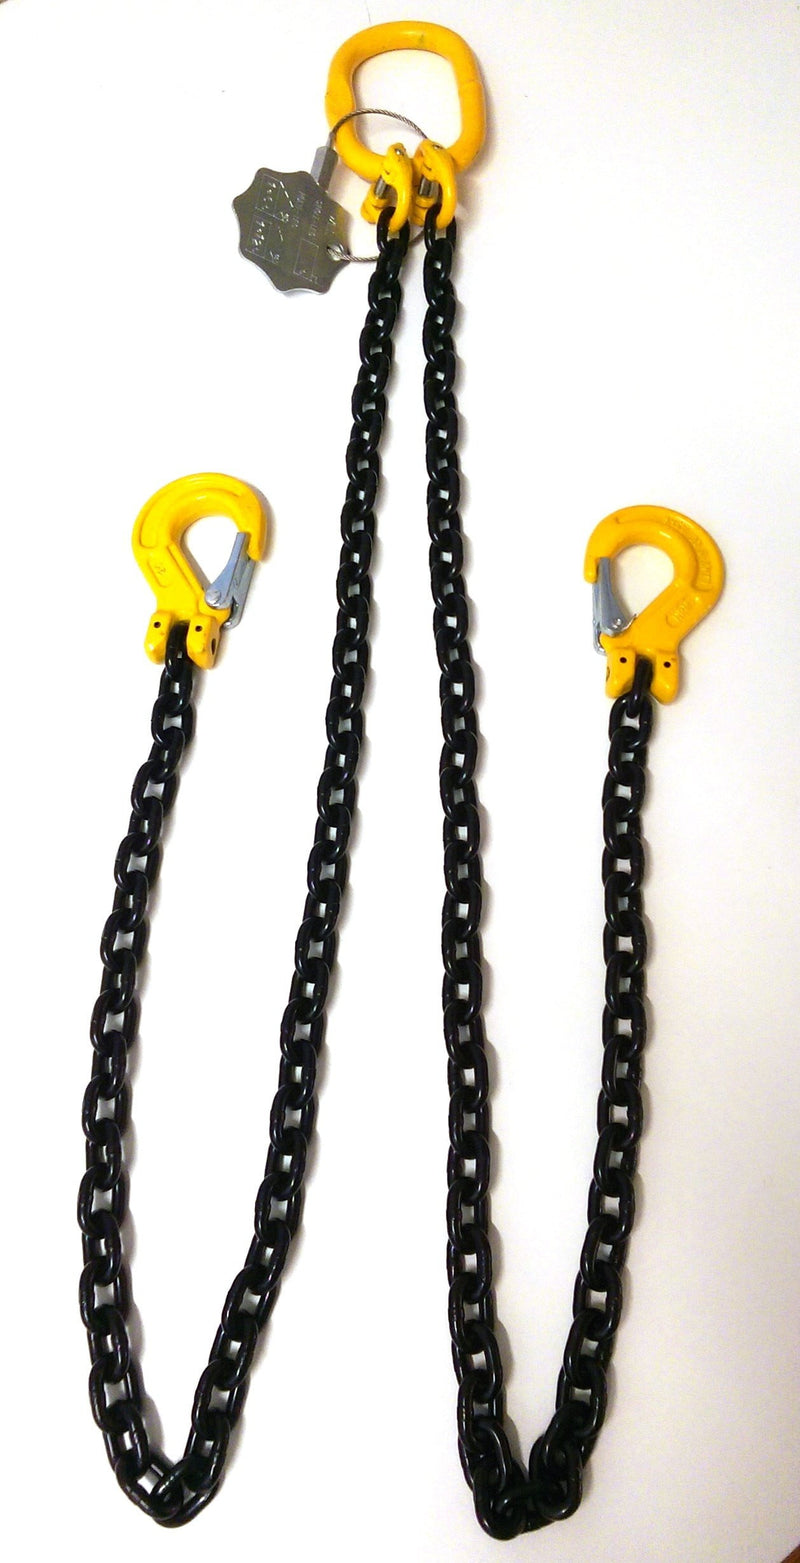 G80 Lifting Chain Sling 6mm 2 Leg x 1m with Safety Hooks